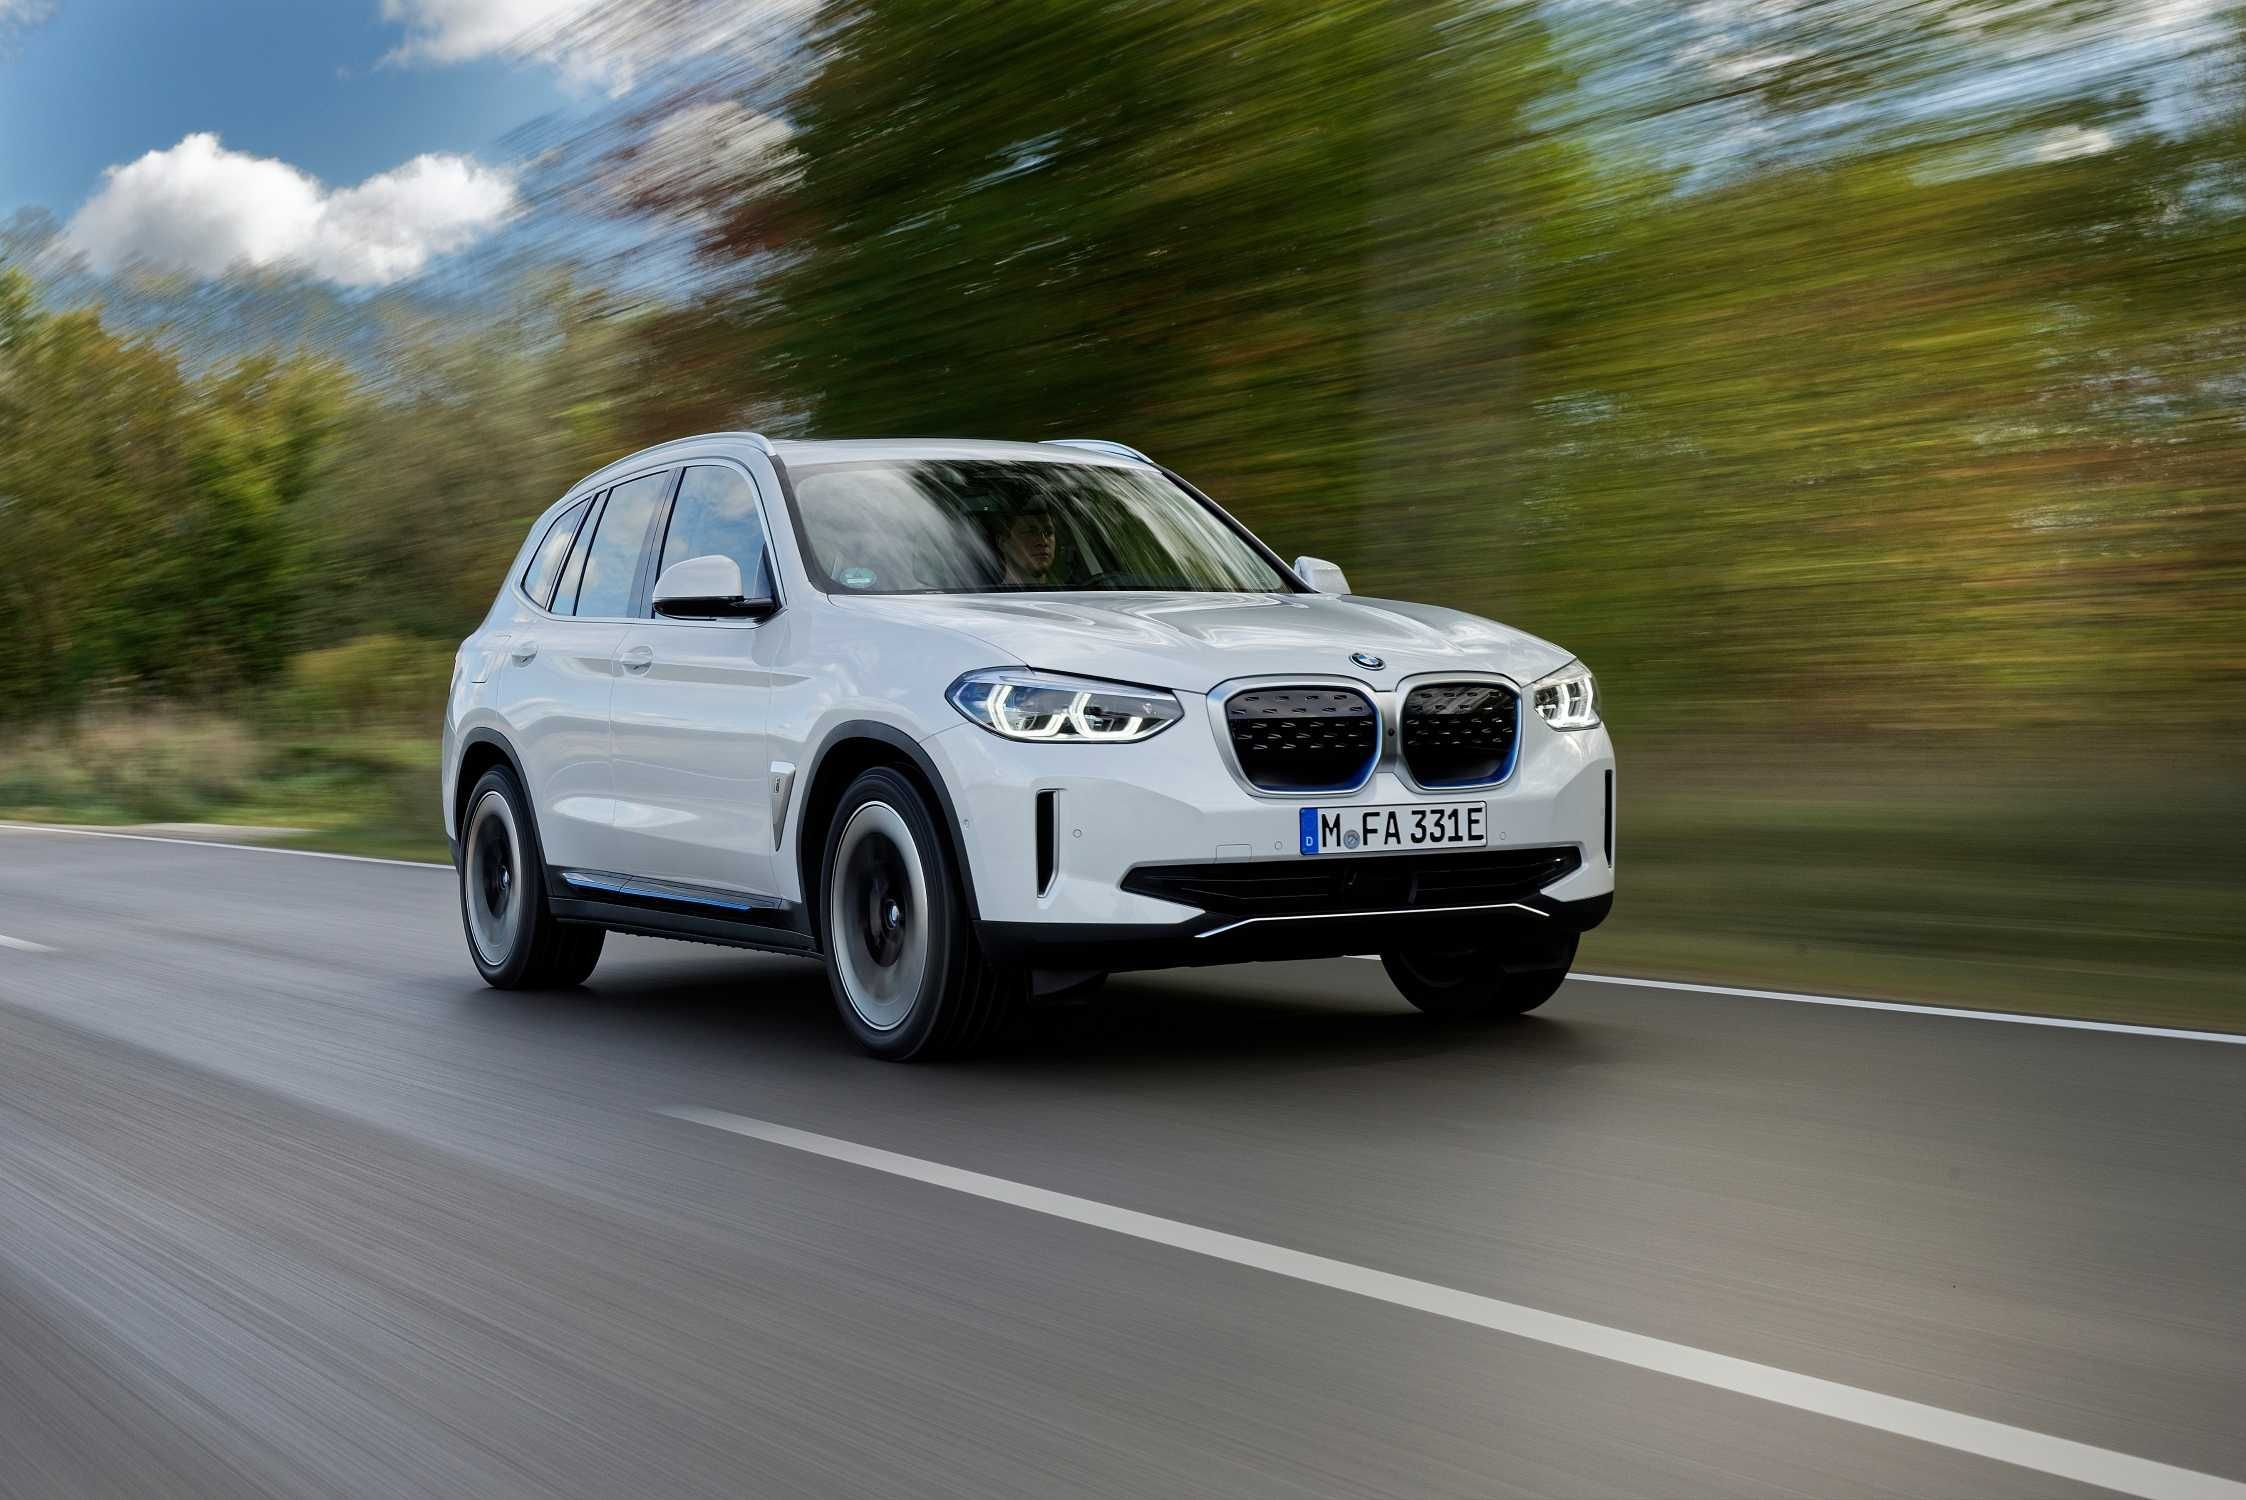 BMW is launching the iX3 electric SUV in Europe with the vehicle arriving at dealerships from China. #bmw #electriccar